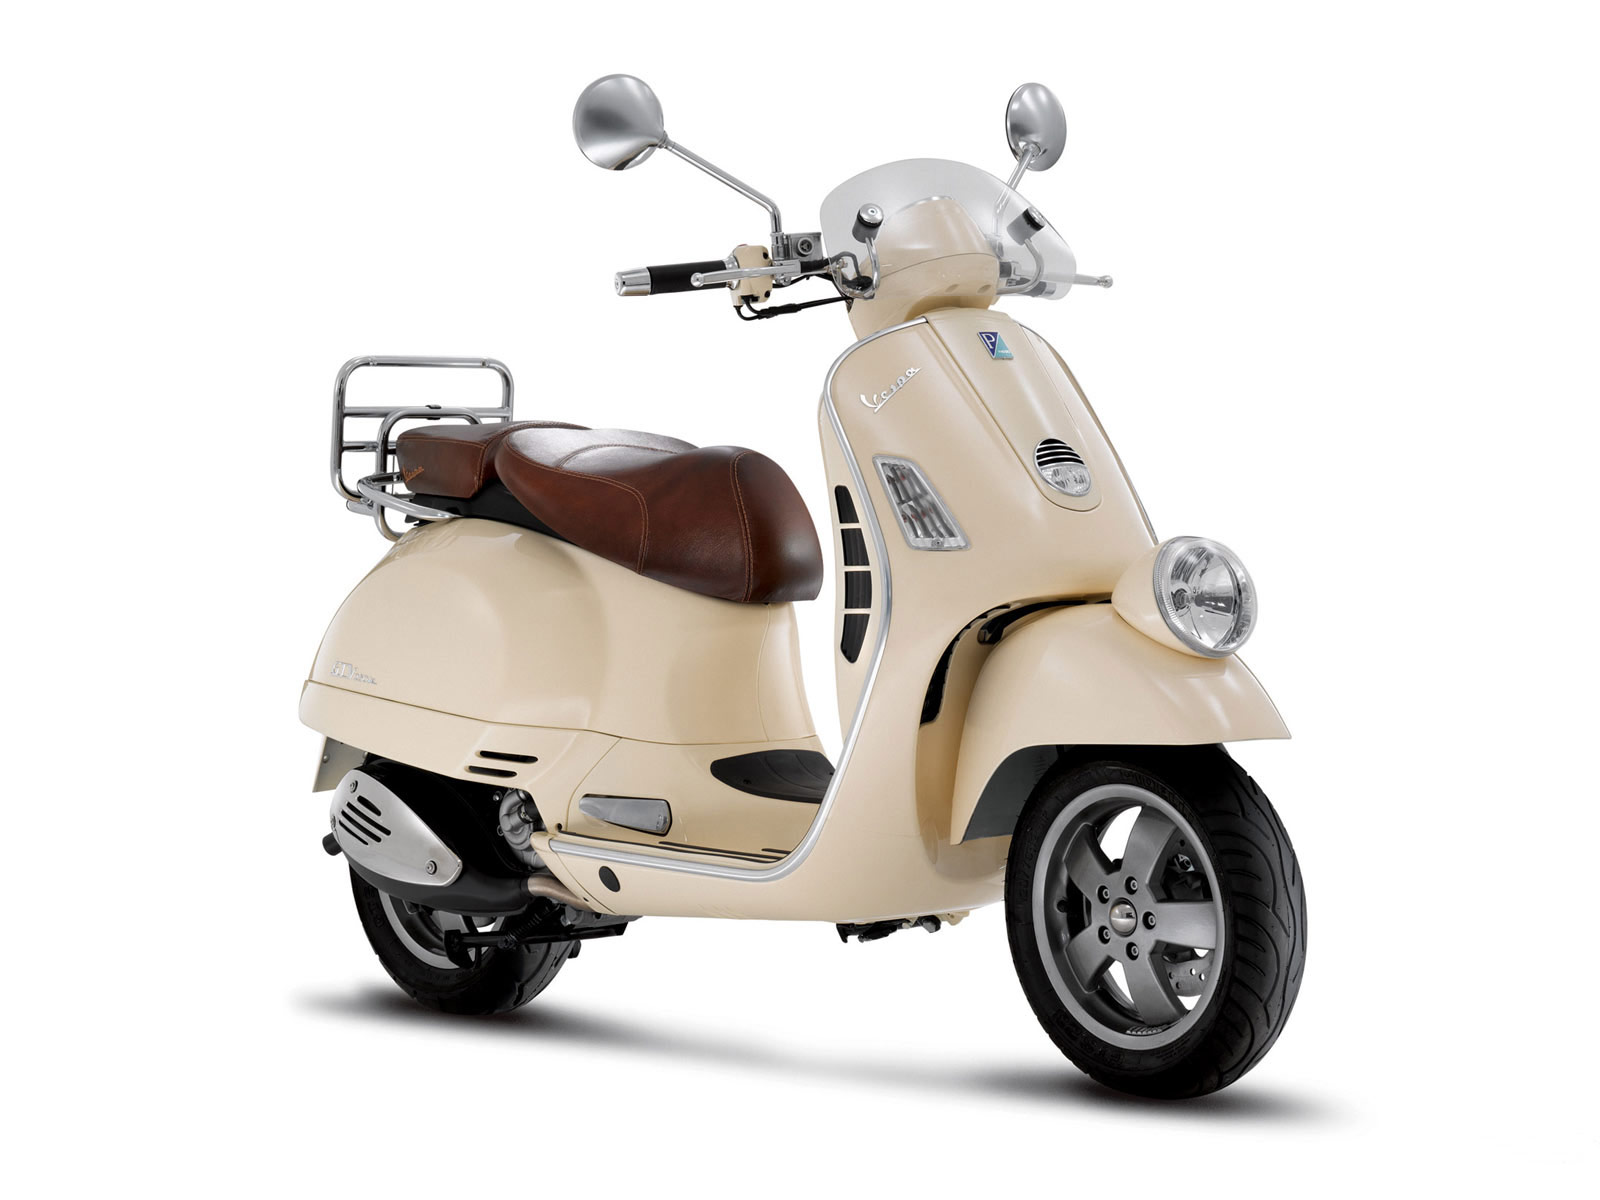 Accident lawyers info. 2008 VESPA GTV LXV 250 scooter pictures